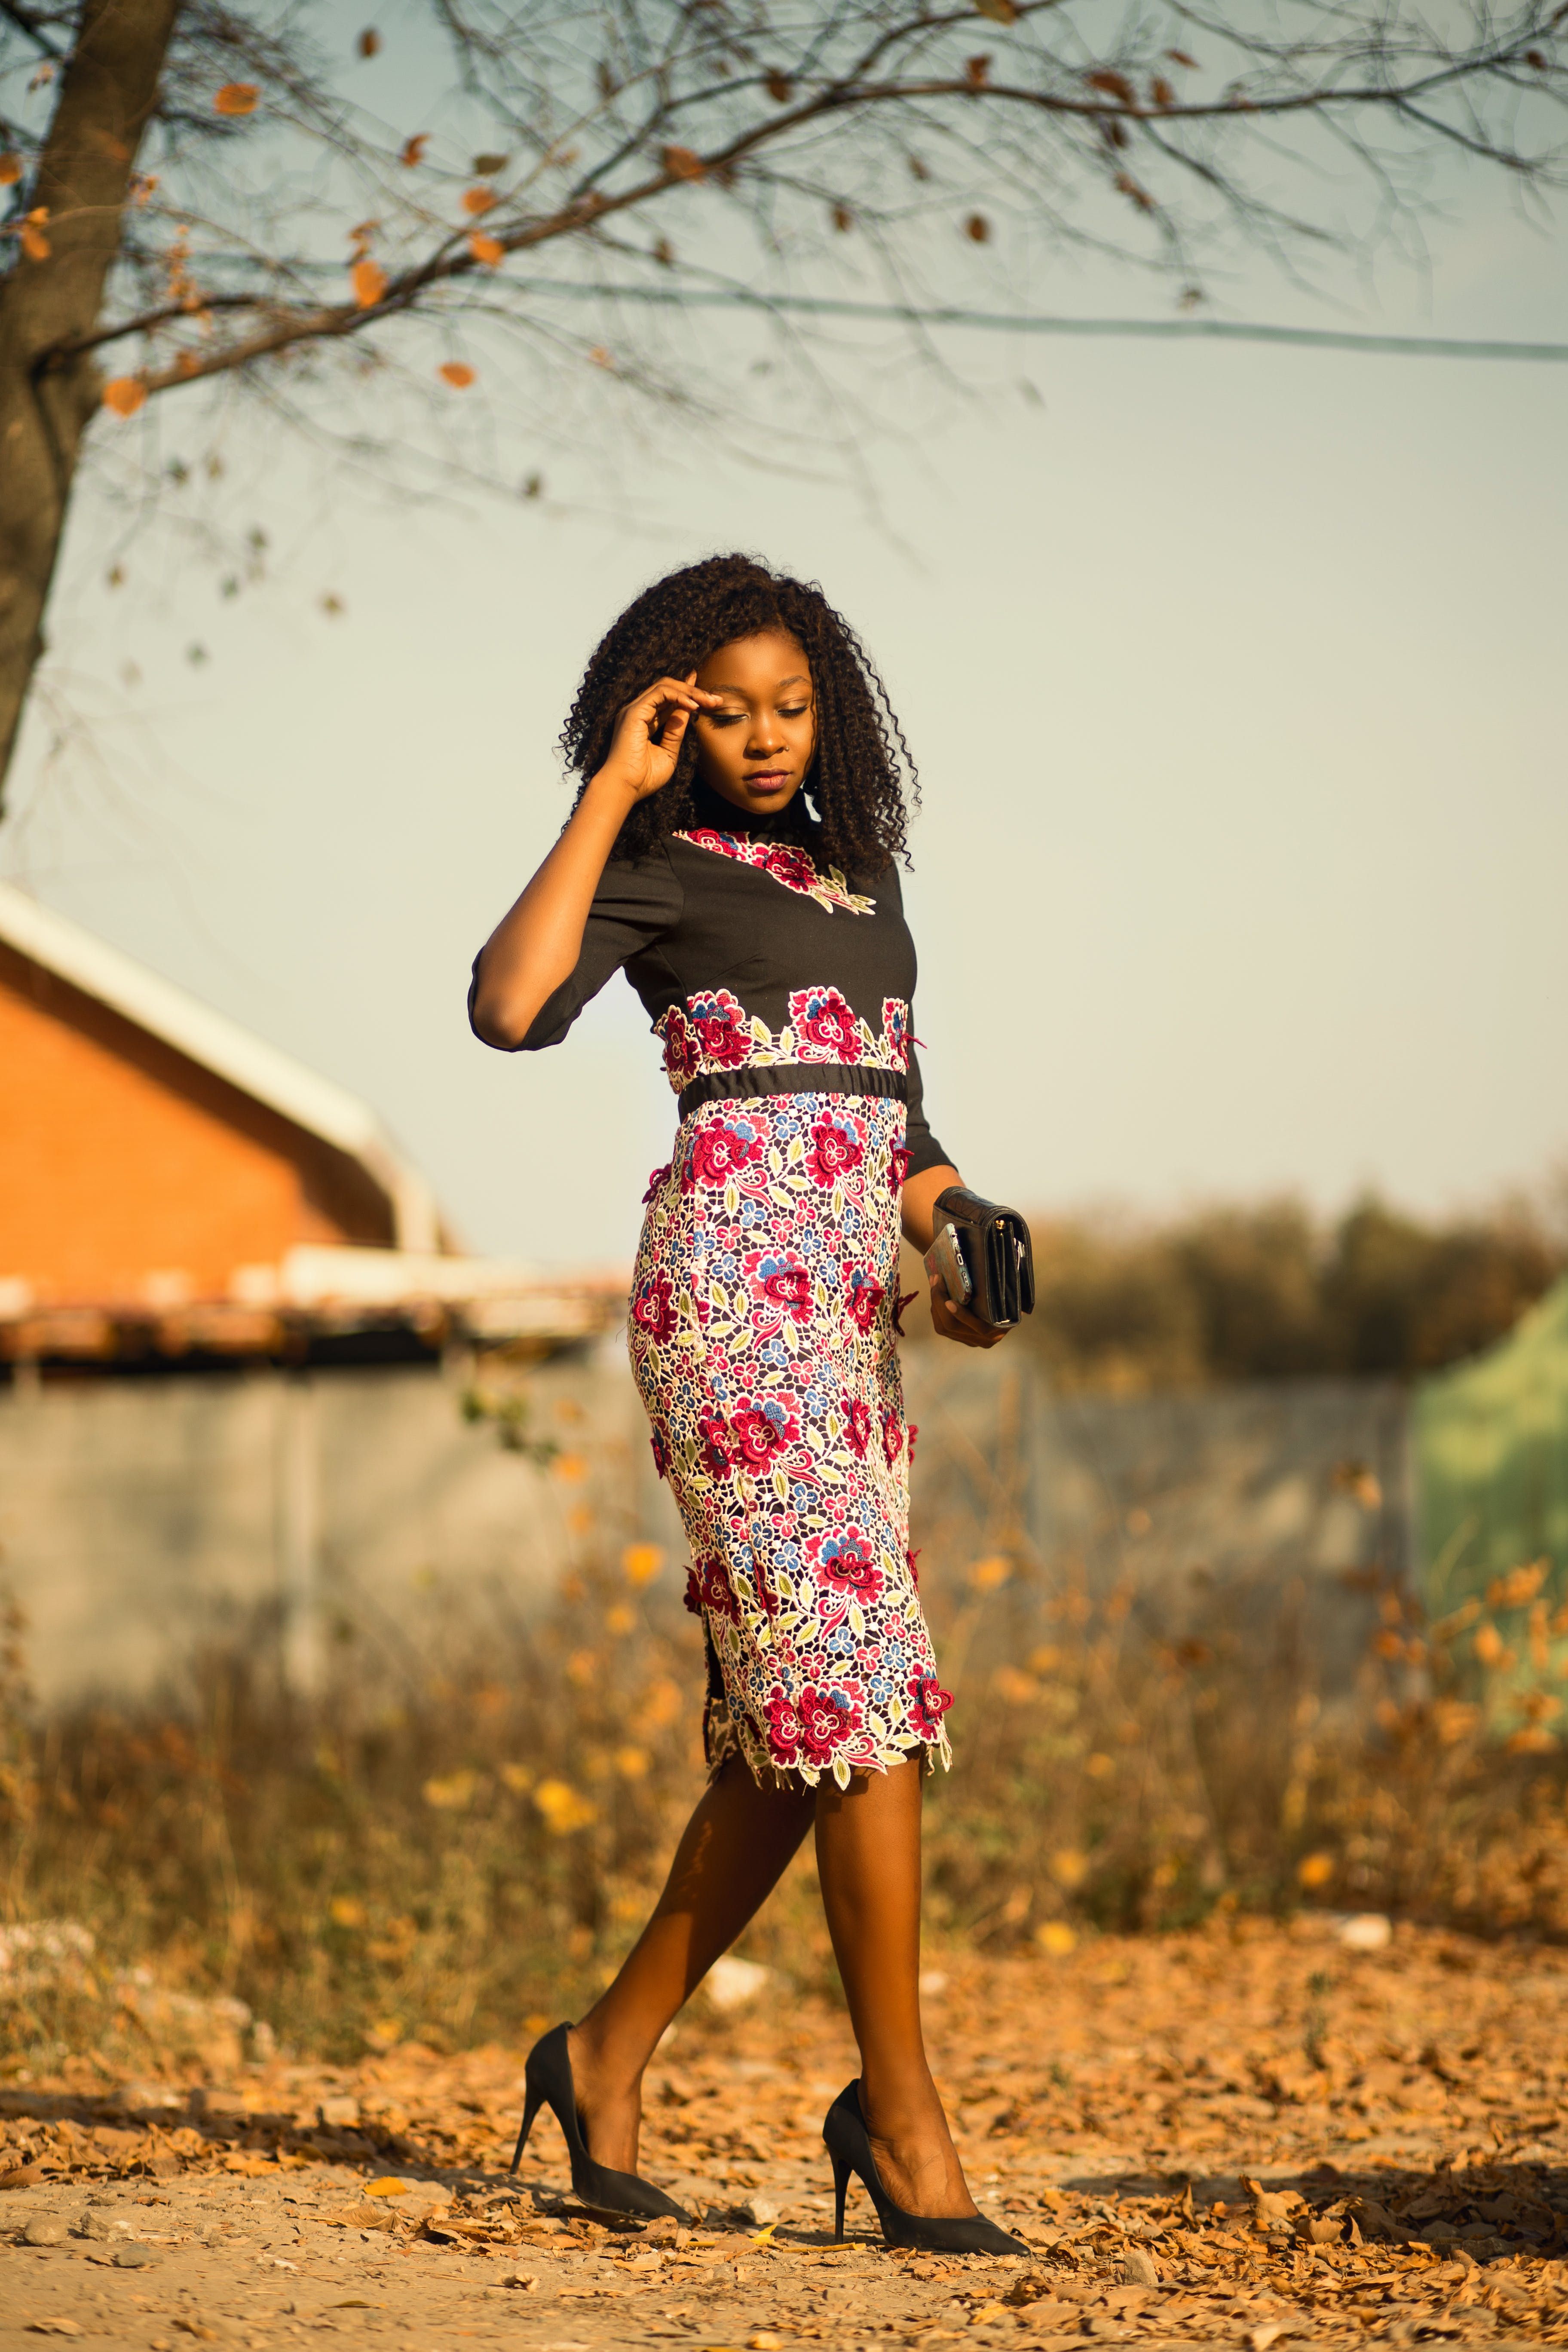 Woman on Floral Dress